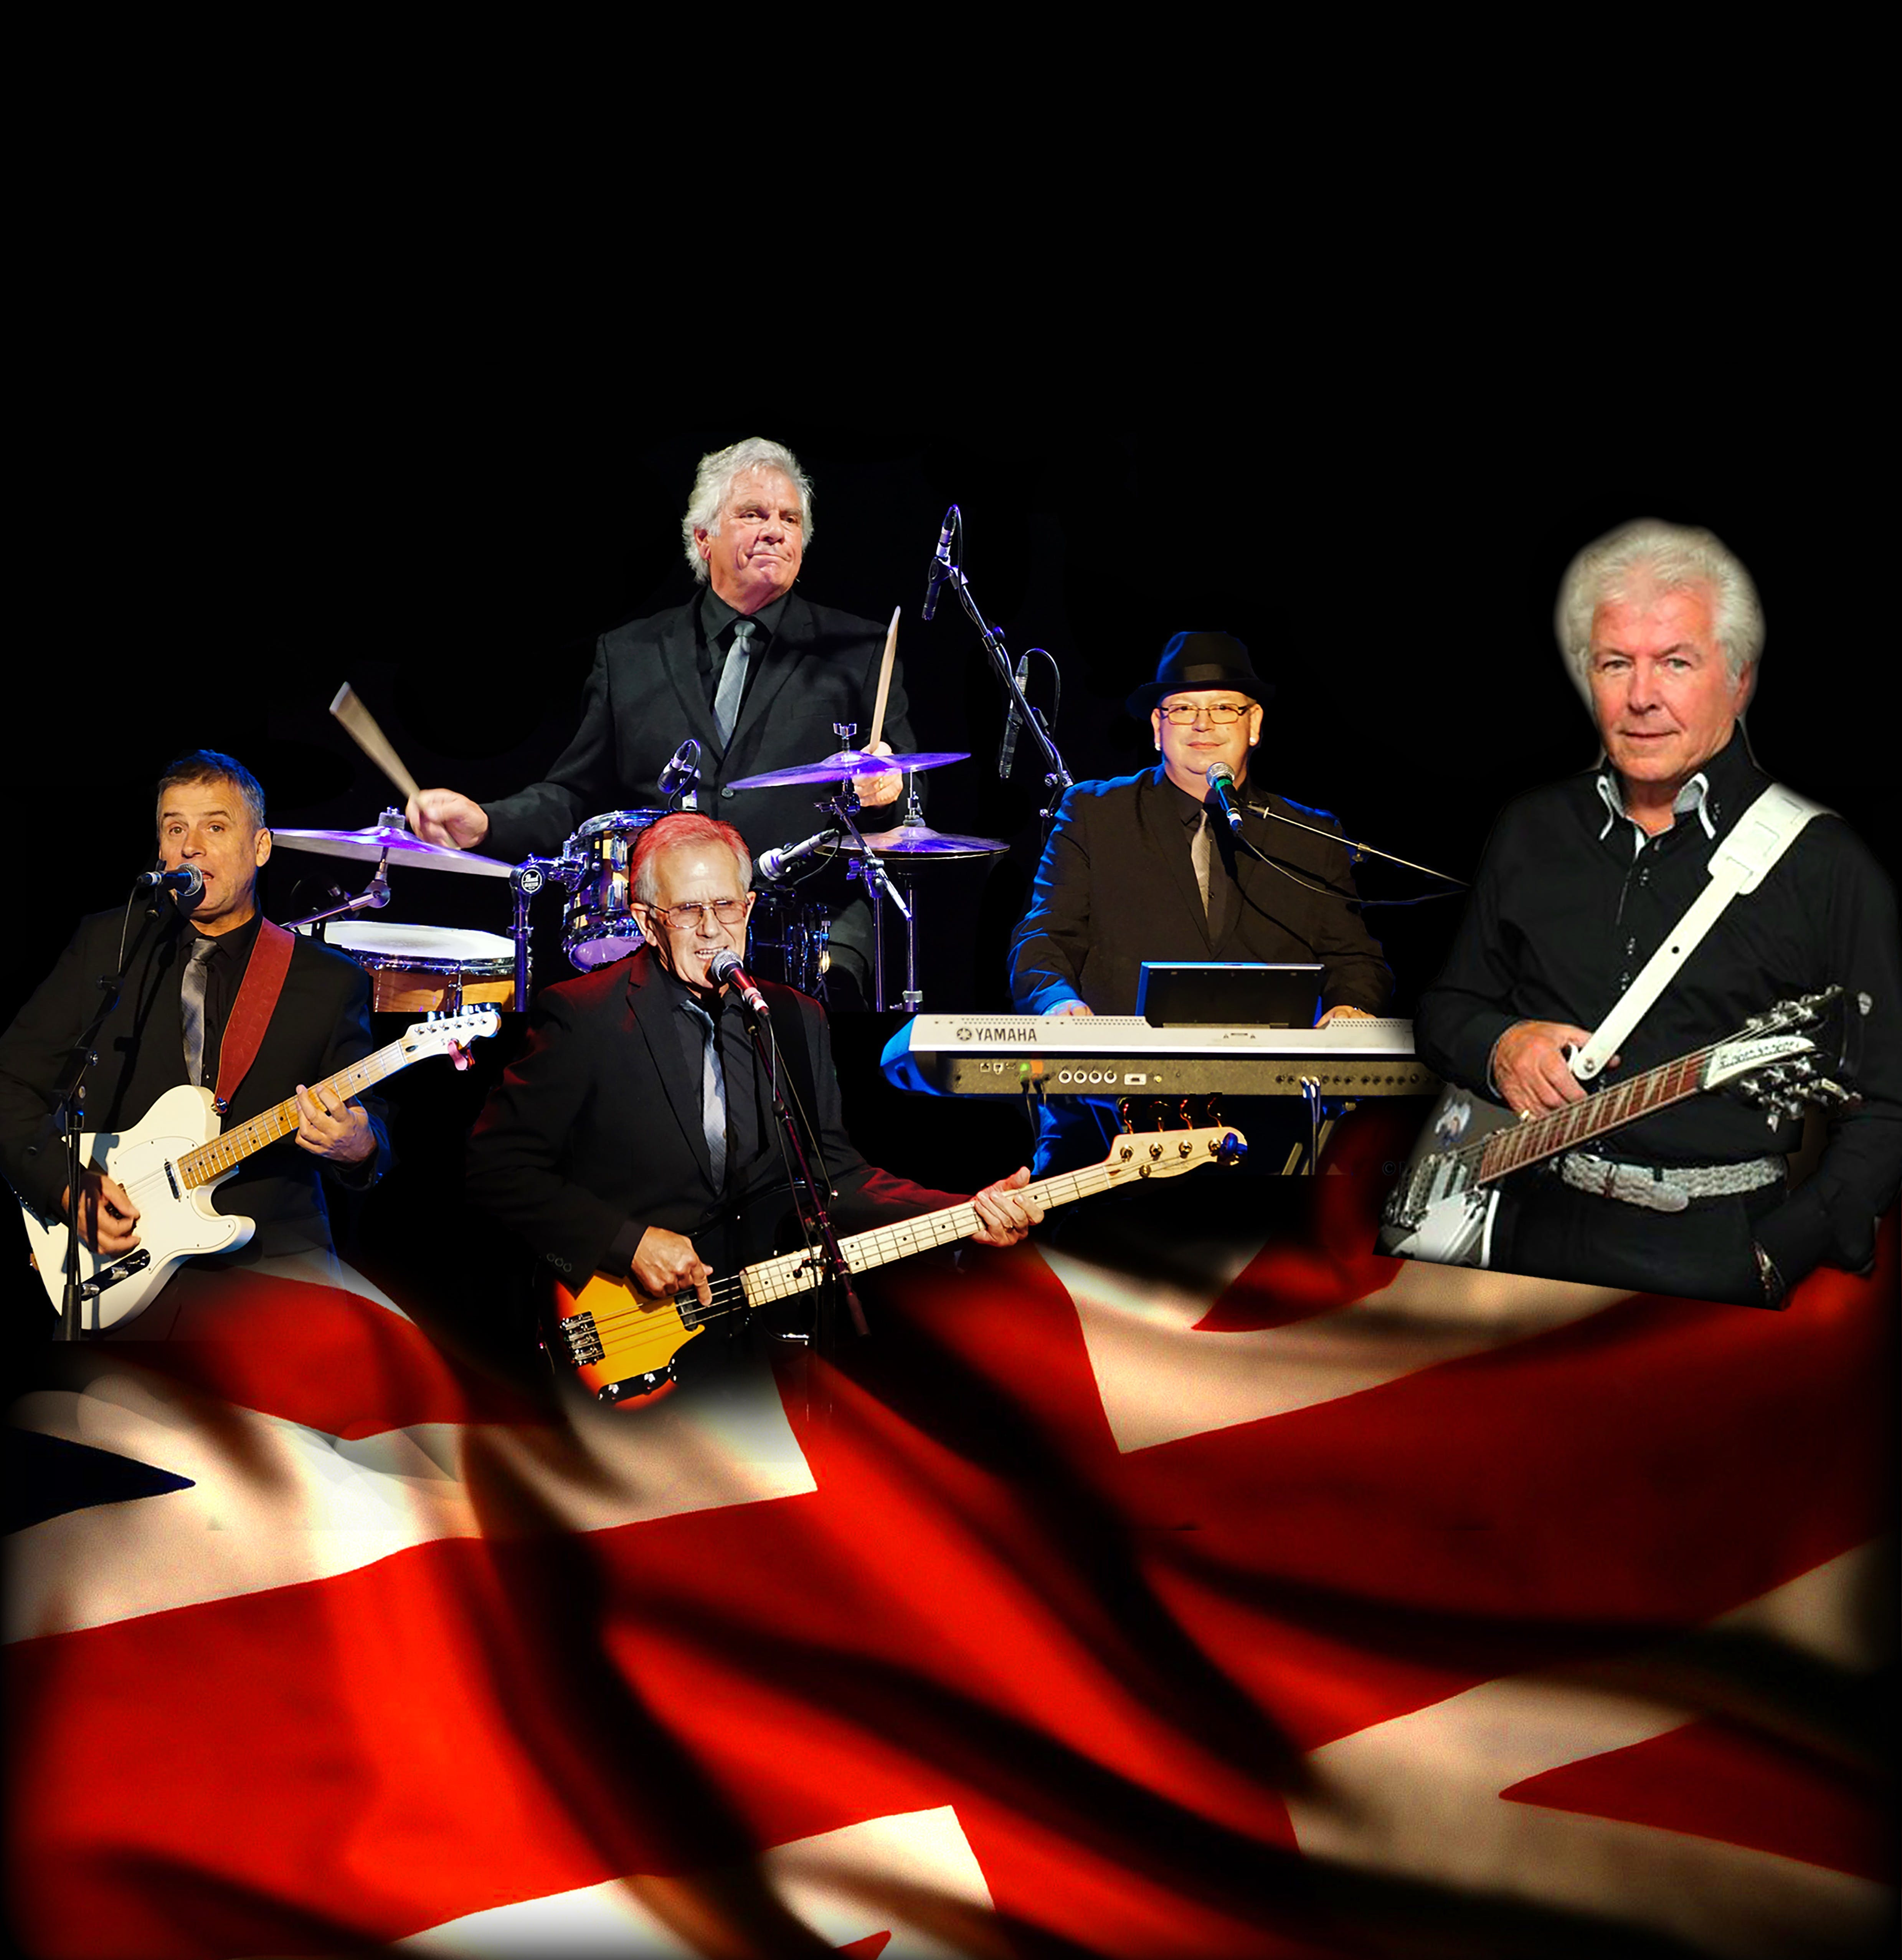 Herman's Hermits with Special Guest Mike Pender - The Six O'Clock Hop - Accommodation Kalgoorlie